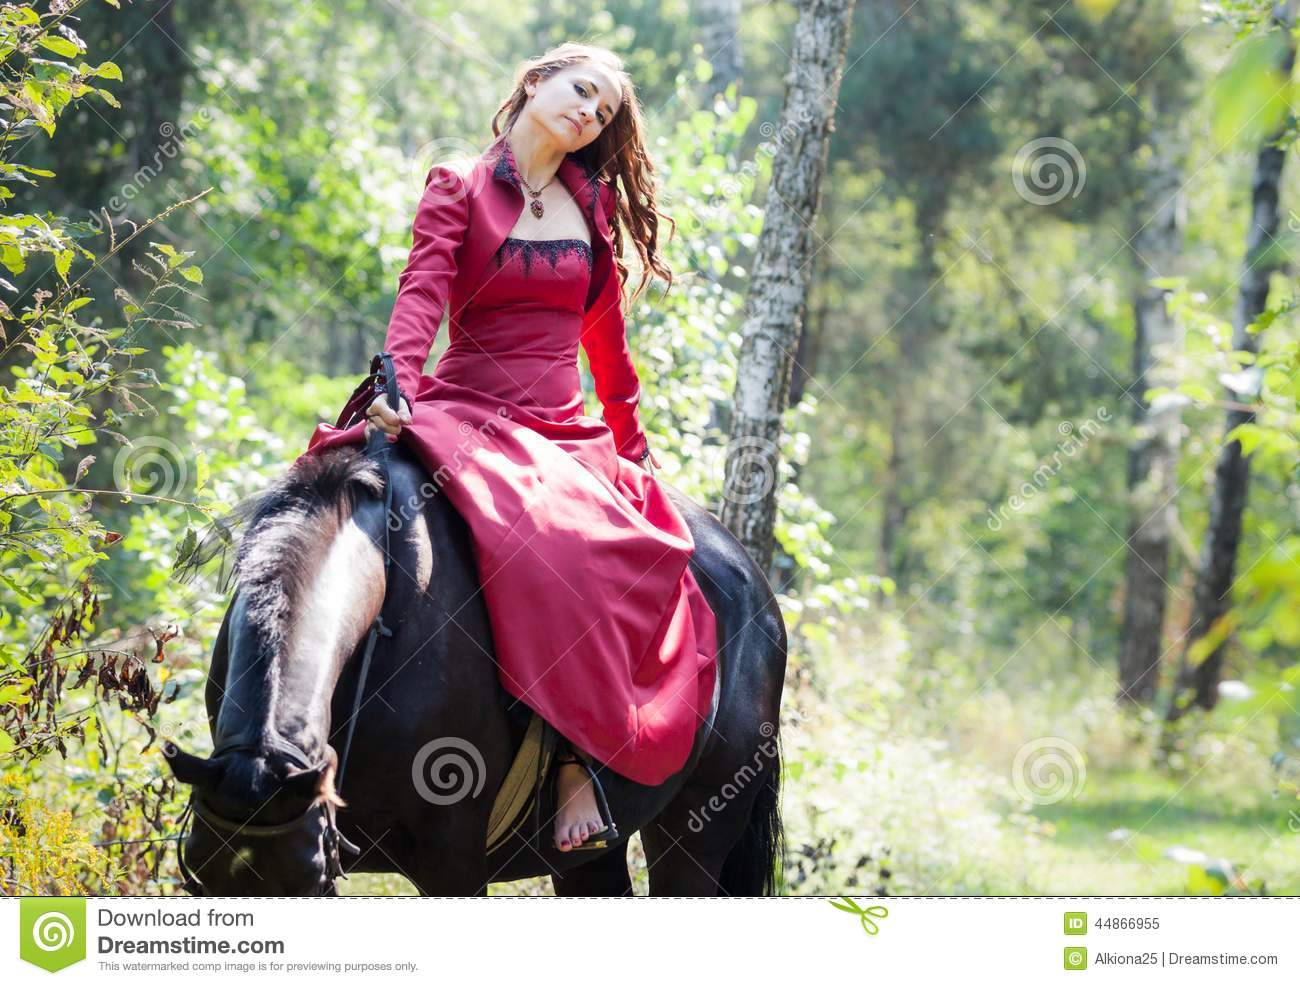 https://thumbs.dreamstime.com/z/brunette-girl-horse-young-beautiful-sit-back-black-green-forest-44866955.jpg